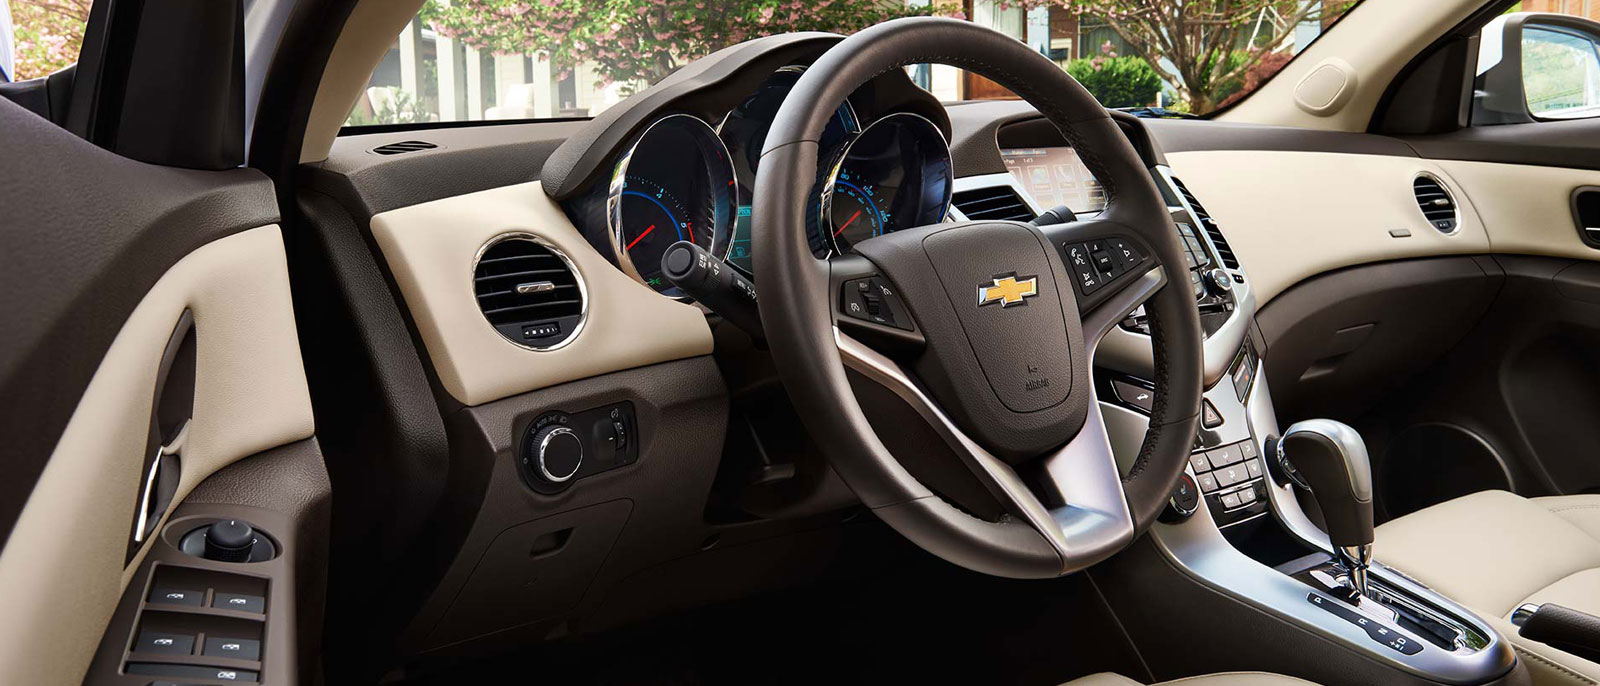 2015 Chevy Cruze Interior ... Great Ideas